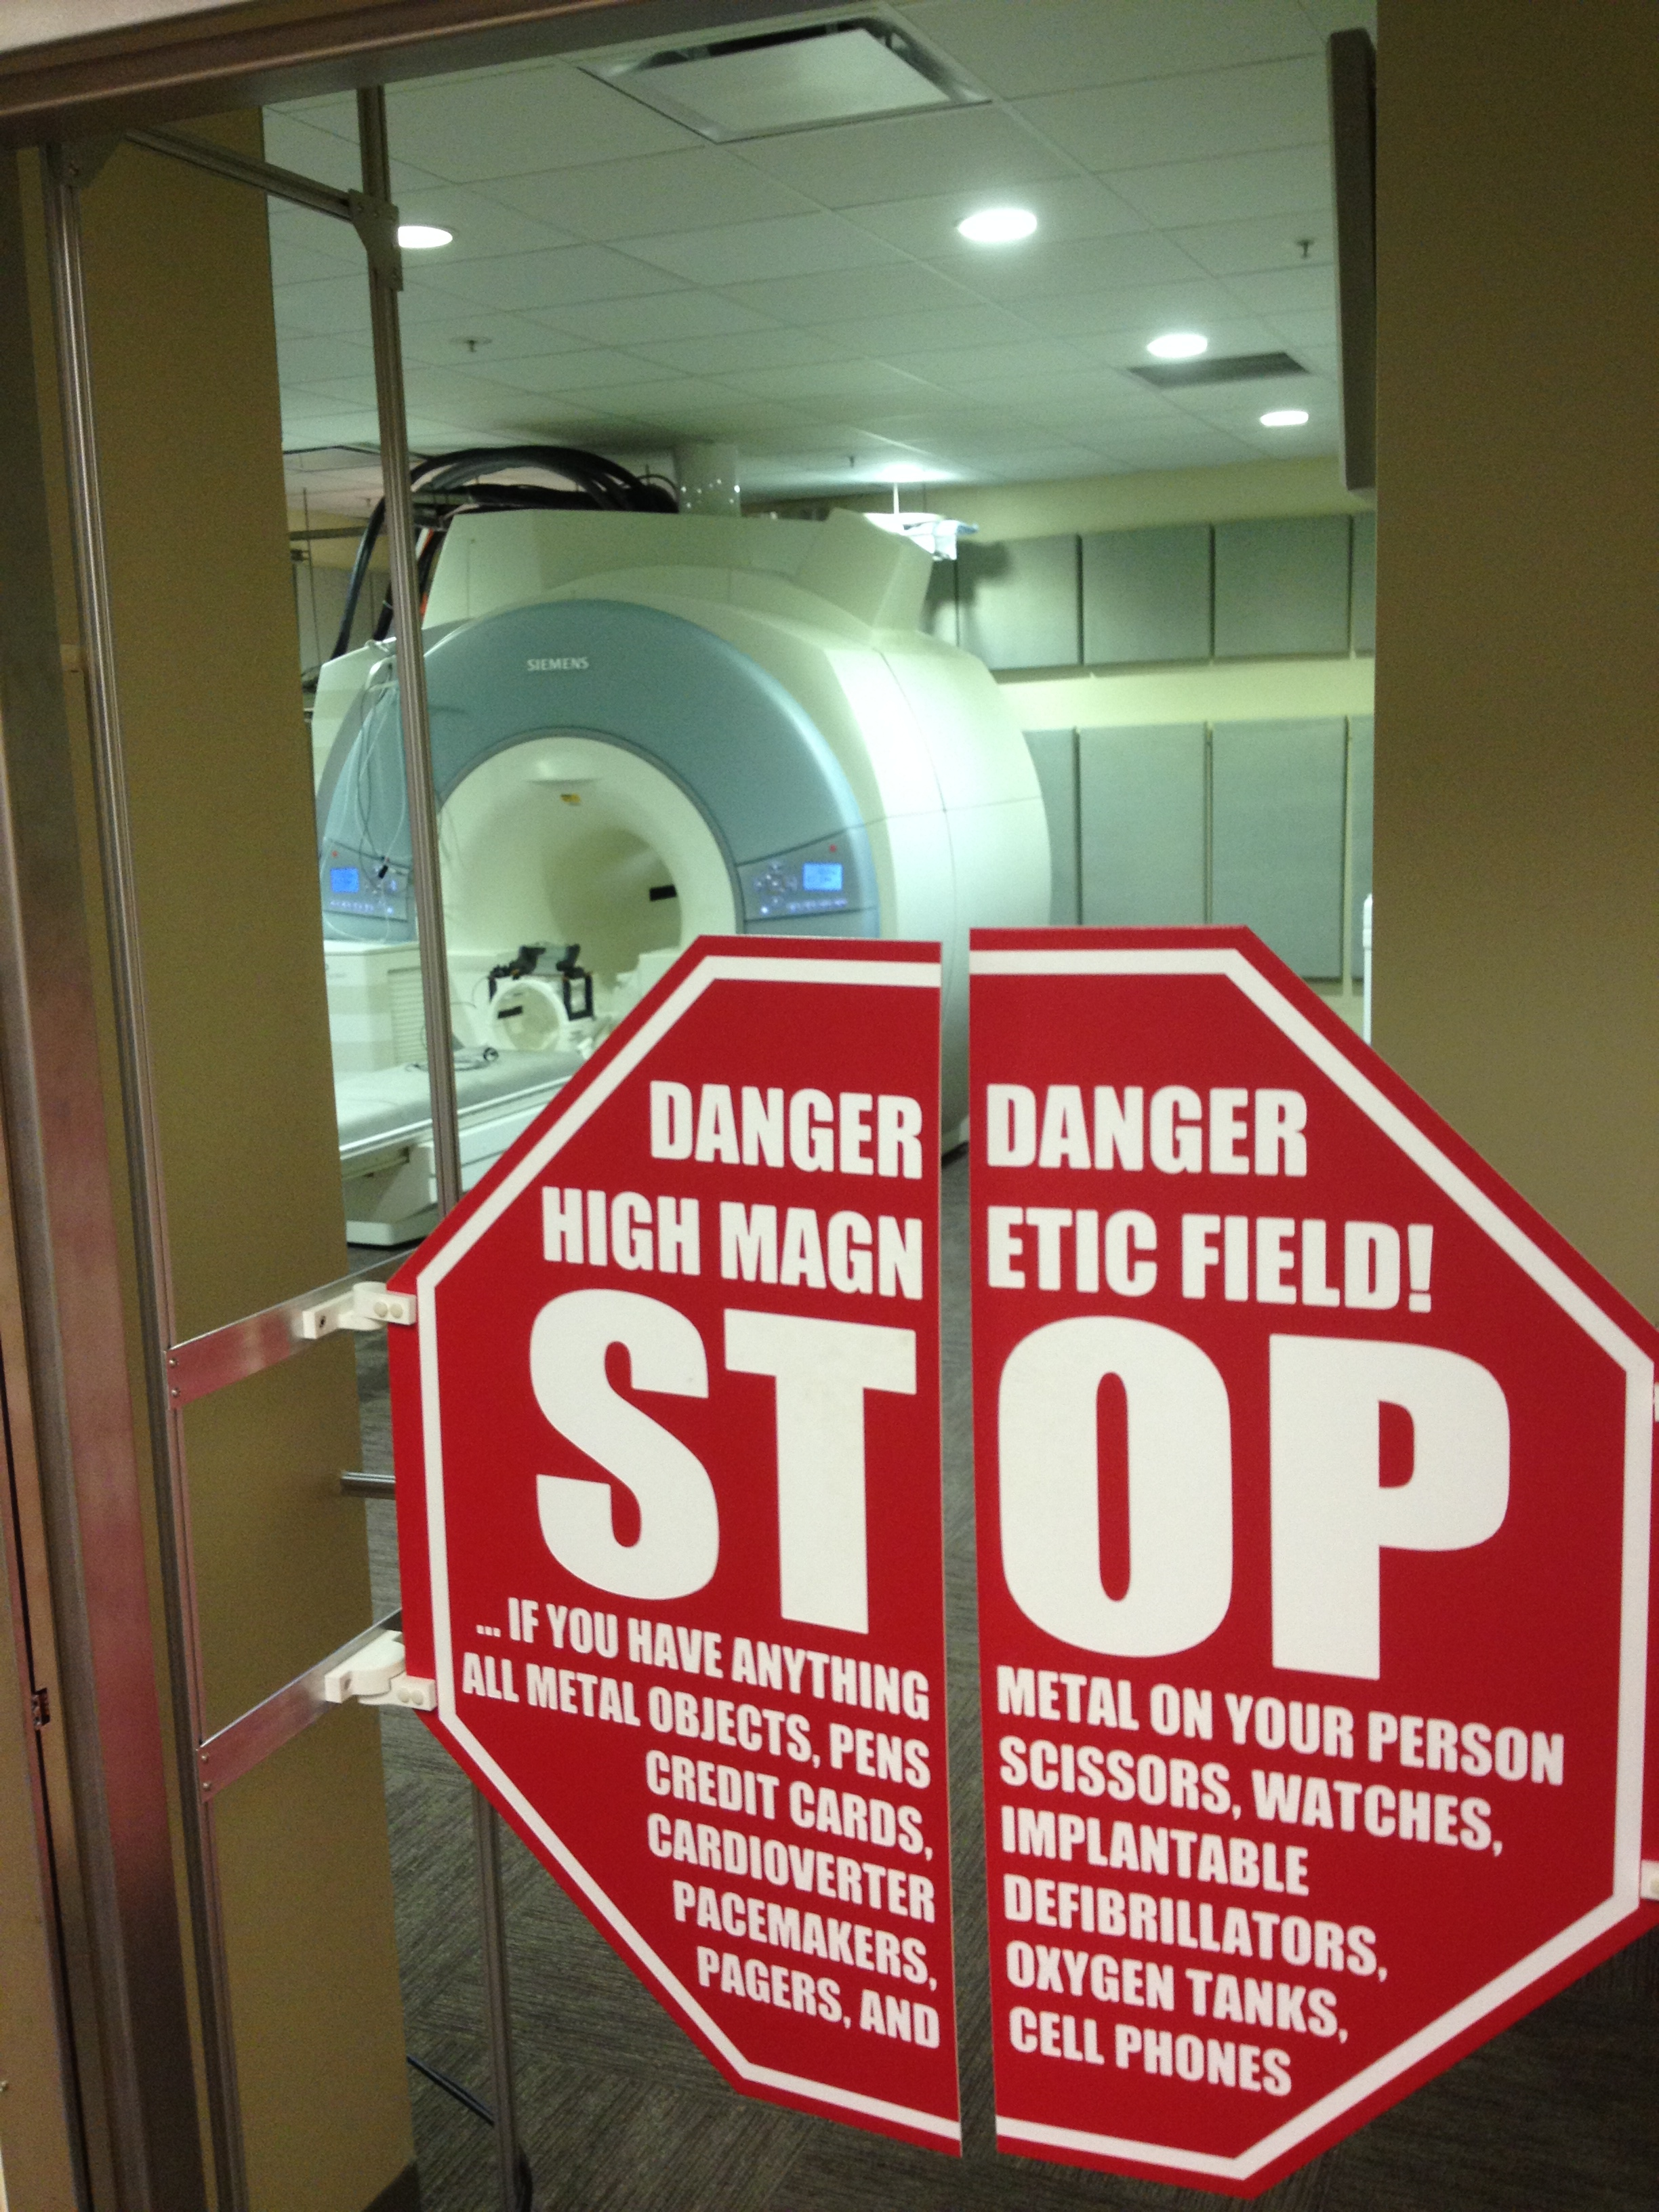 The scary MRI scanner